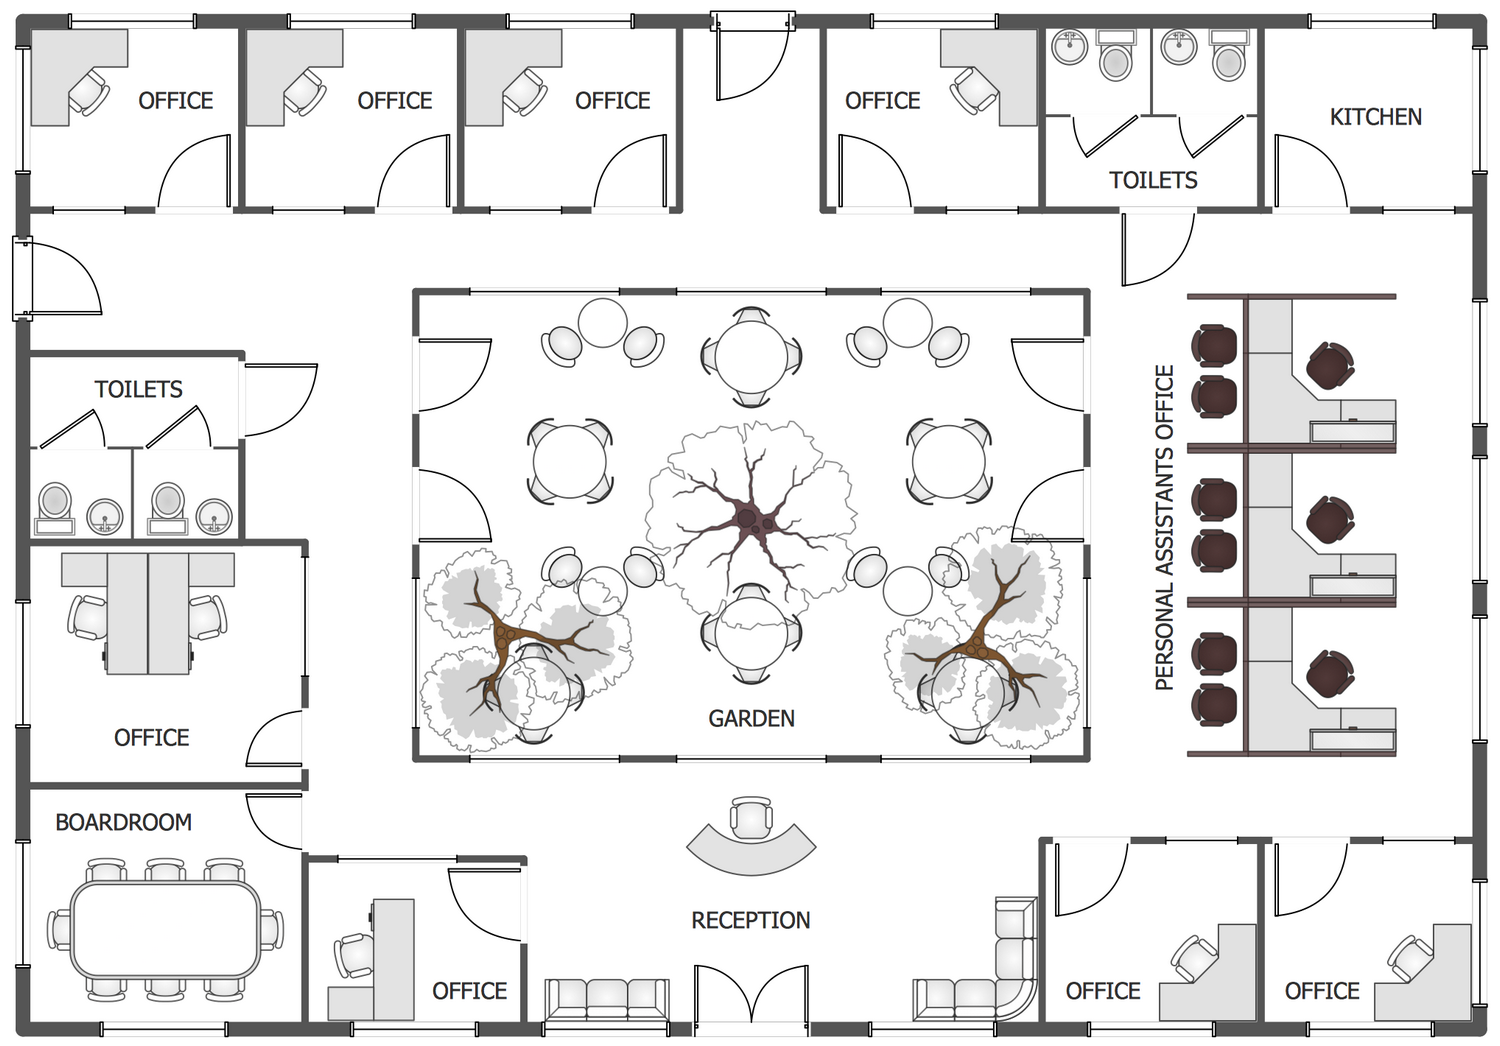 Office layout plans solution for Floor plan layout